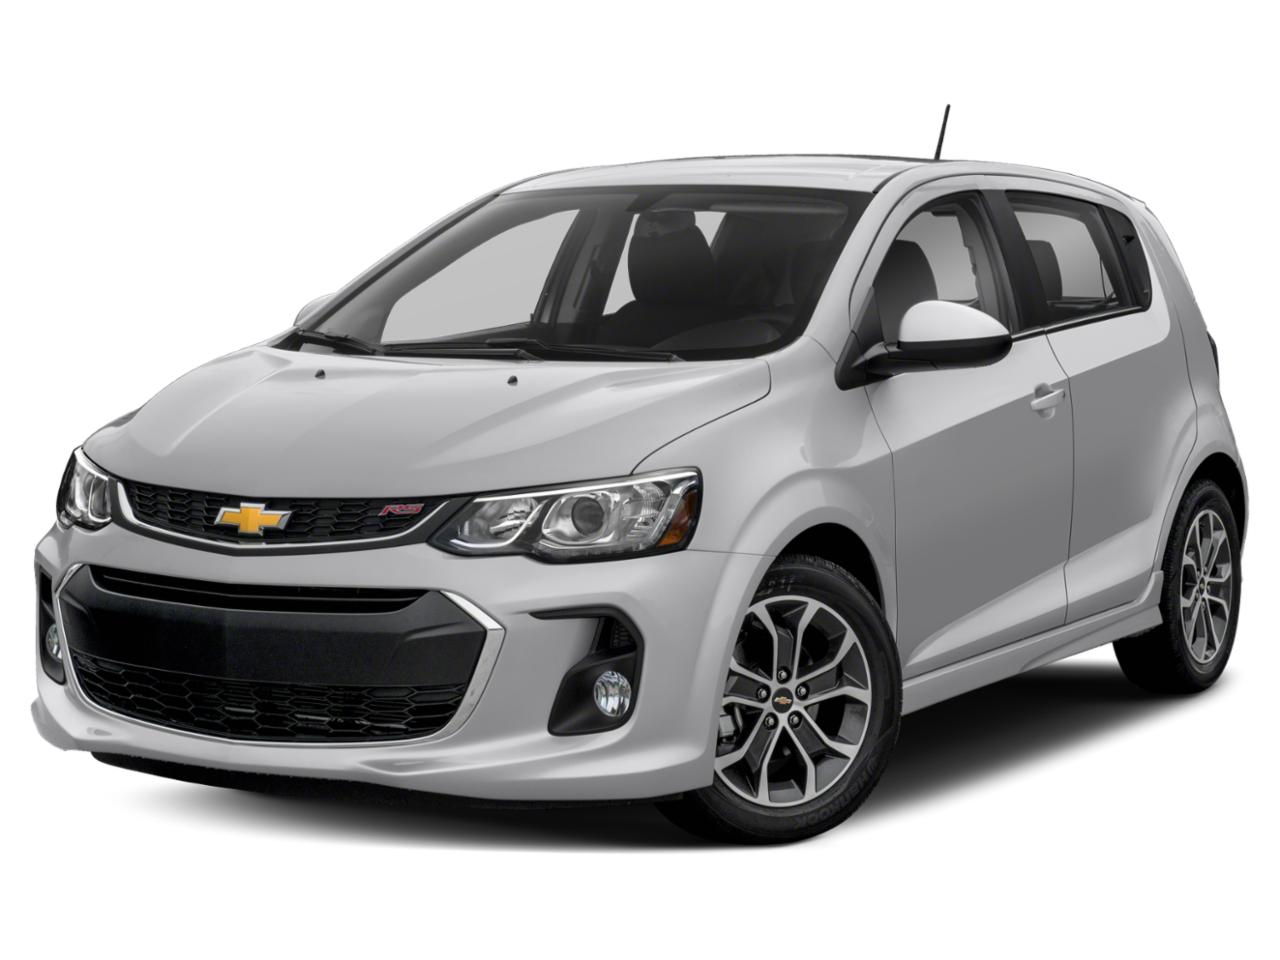 2020 Chevrolet Sonic Vehicle Photo in Redding, CA 96002